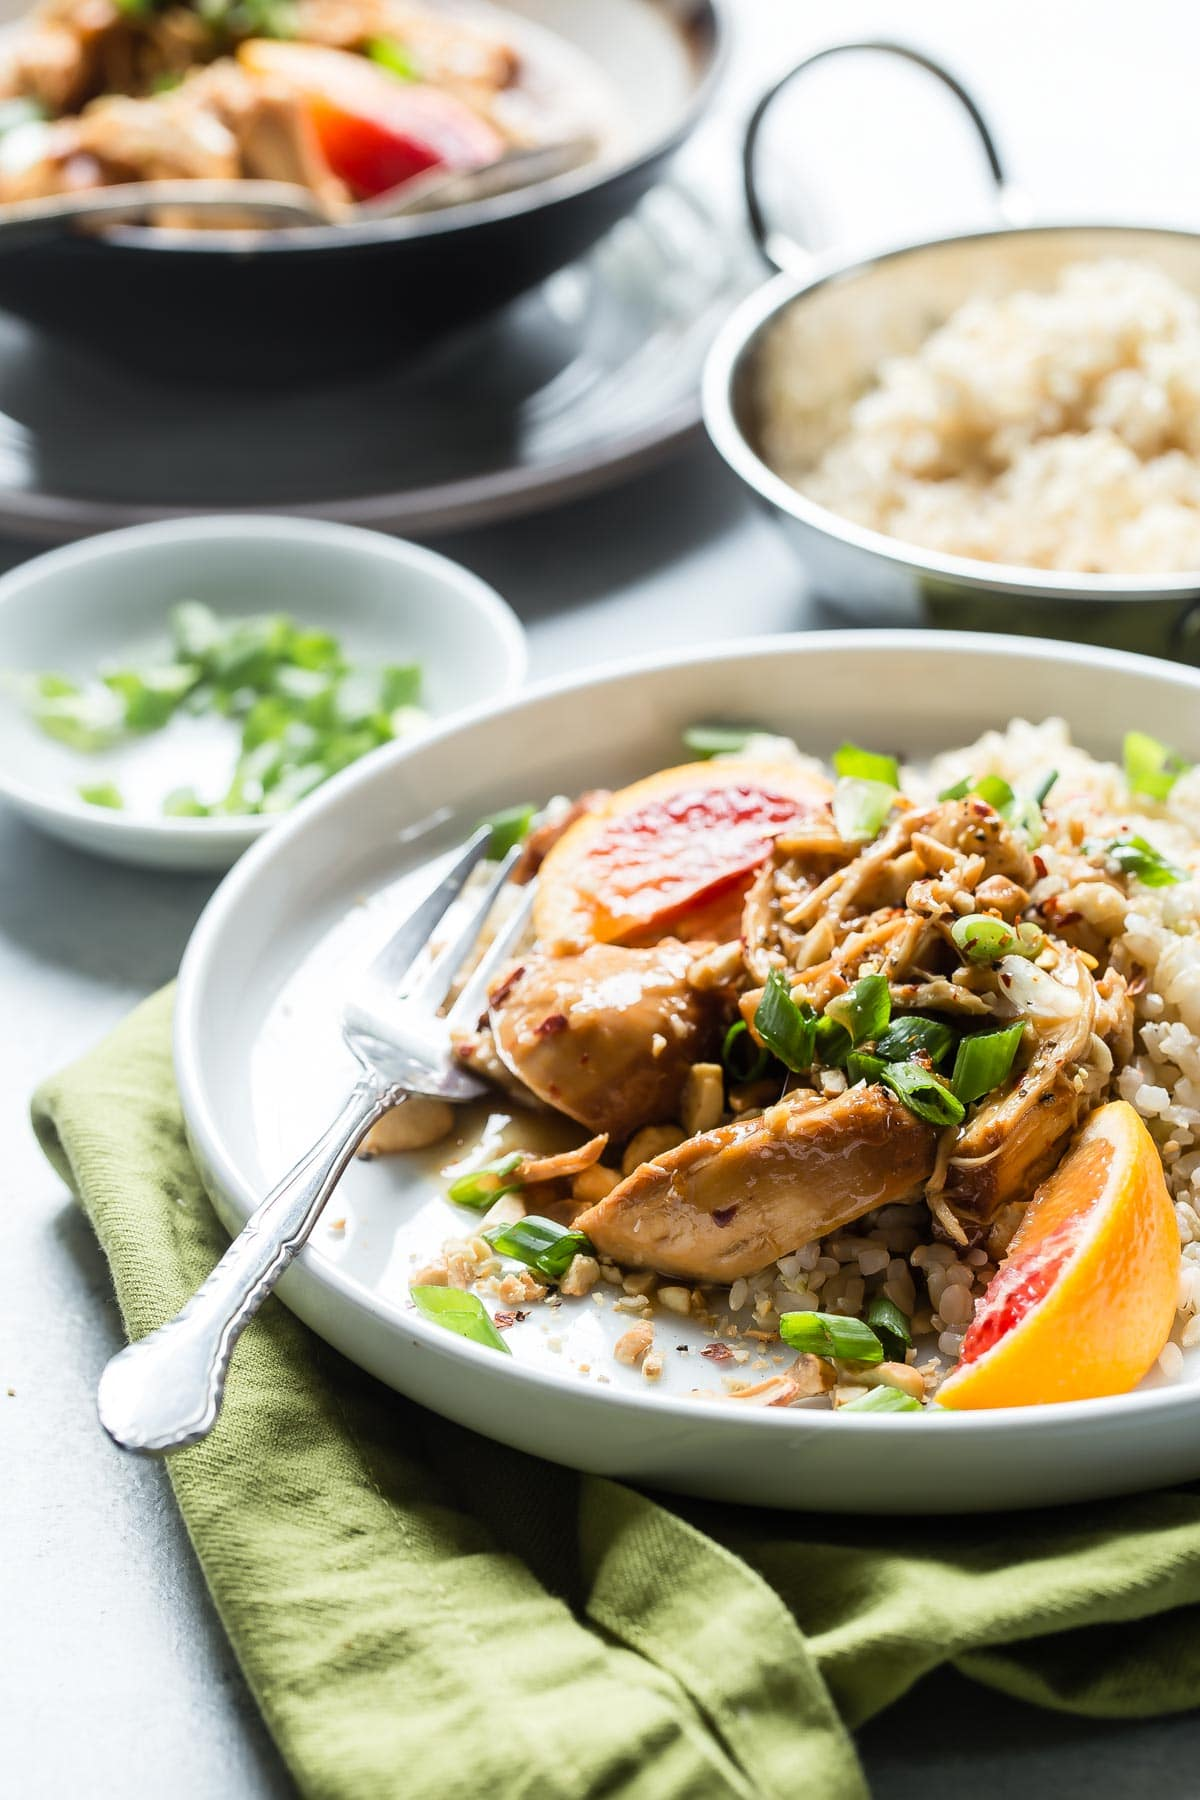 Awesome shredded orange chicken with brown rice!